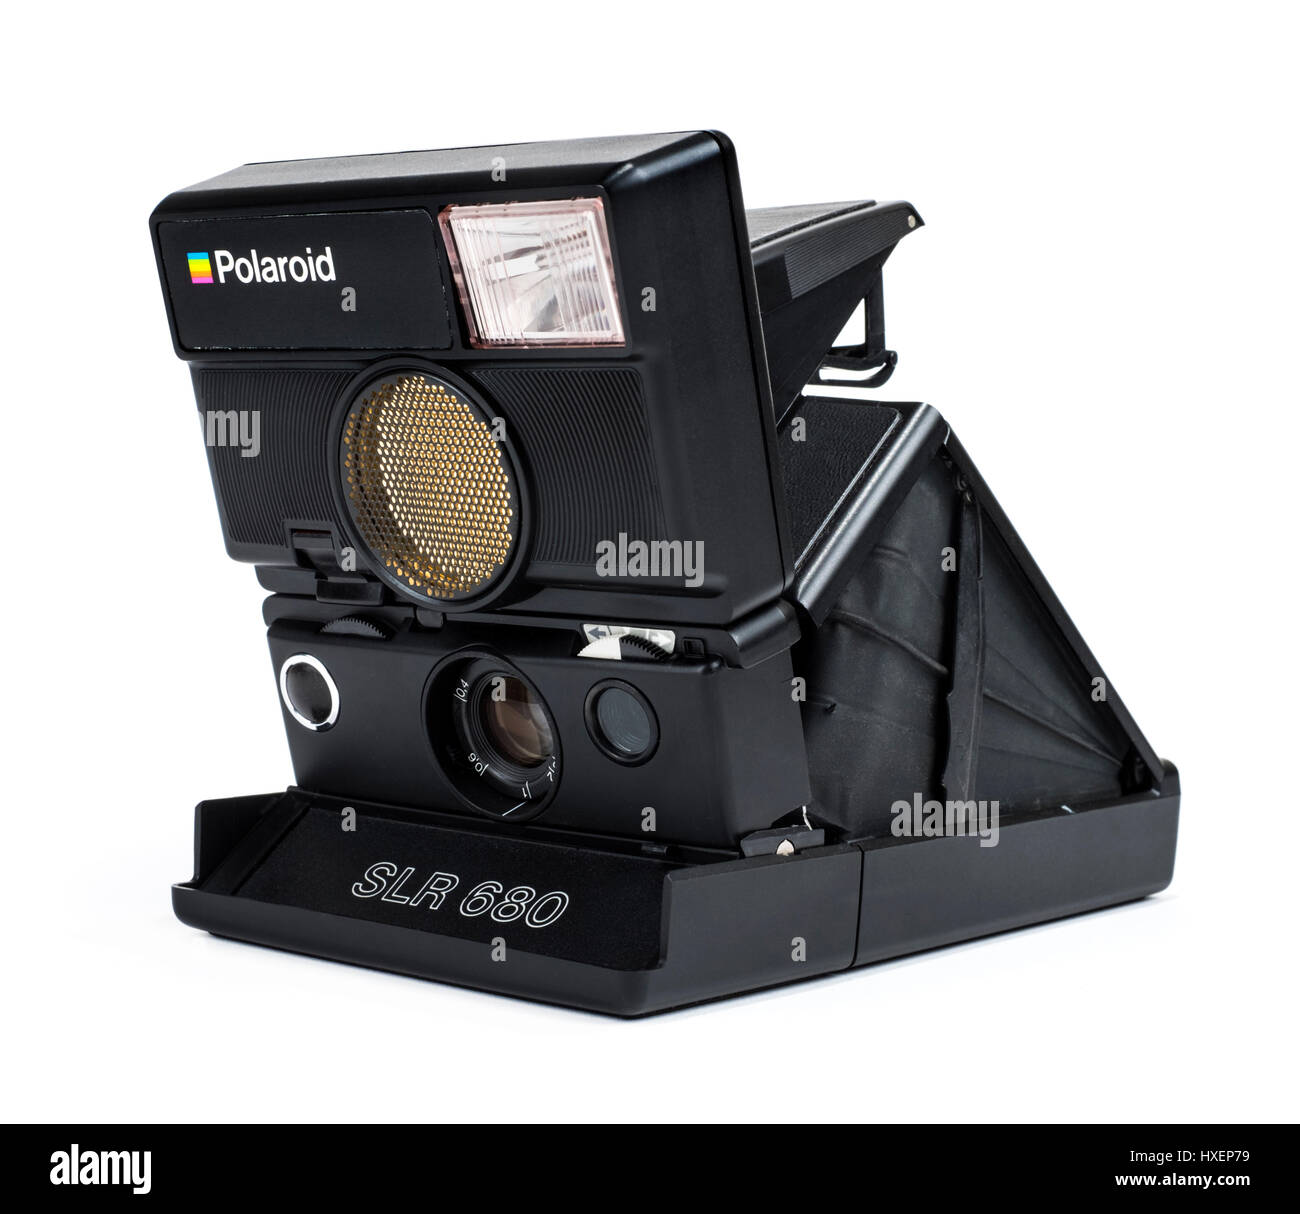 Vintage 1980's Polaroid SLR 680 folding instant film camera with revolutionary Sonar autofocus system and auto-tilting Stock Photo